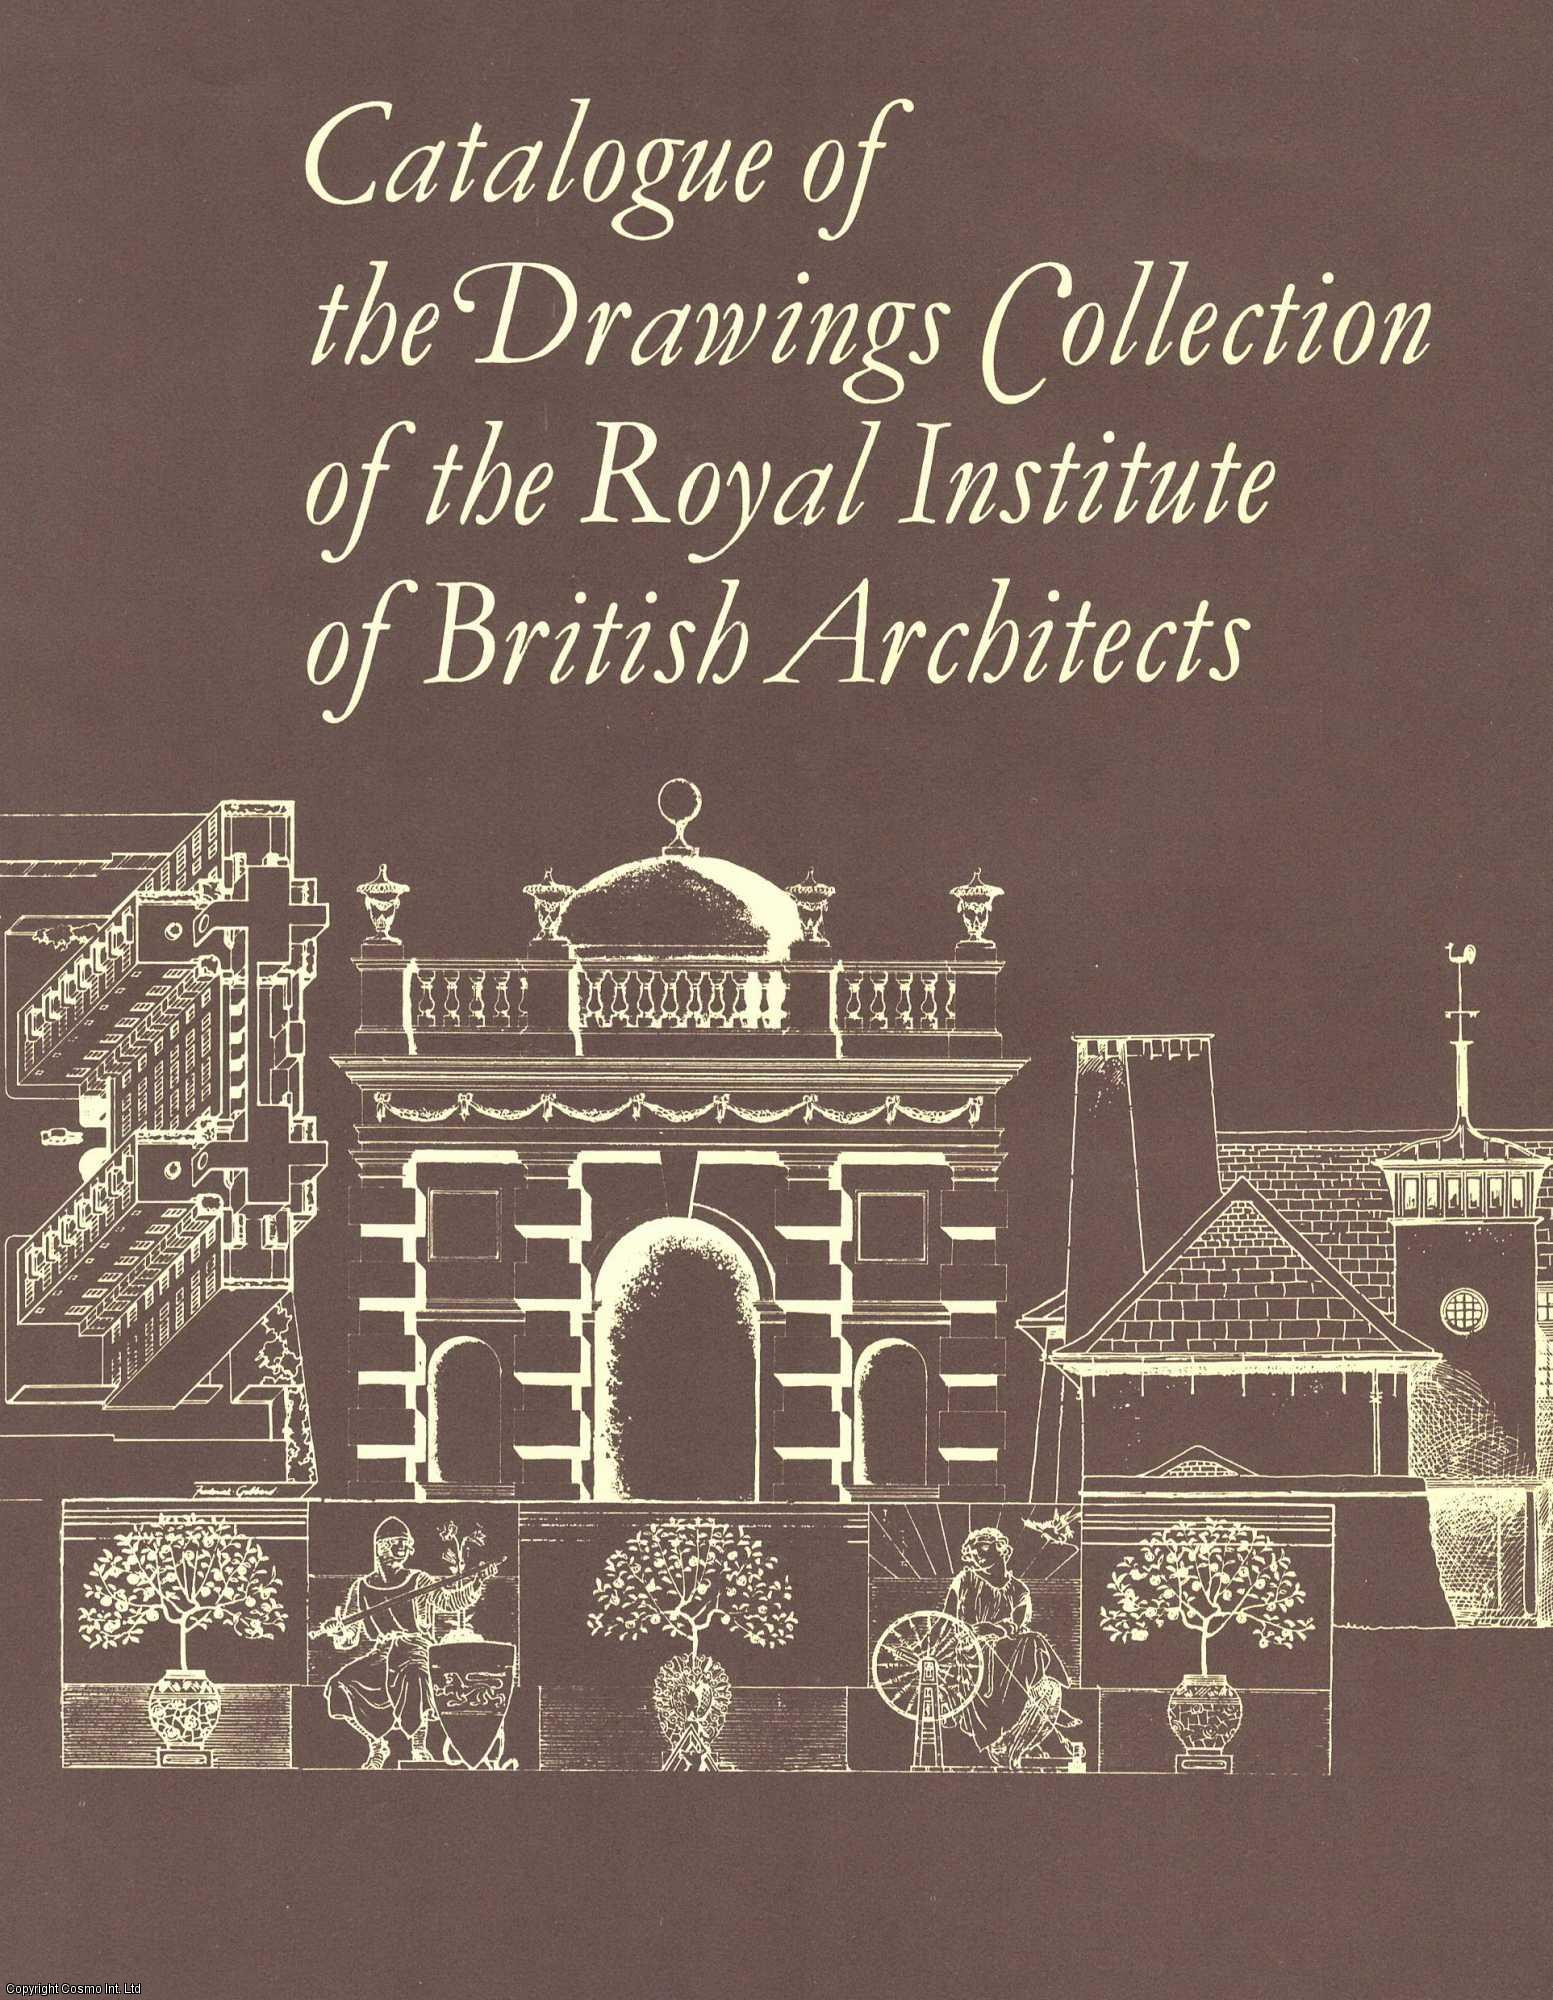 Section T to Z : Catalogue of the Drawings Collection of the Royal Institute of British Architects., Lever, Jill